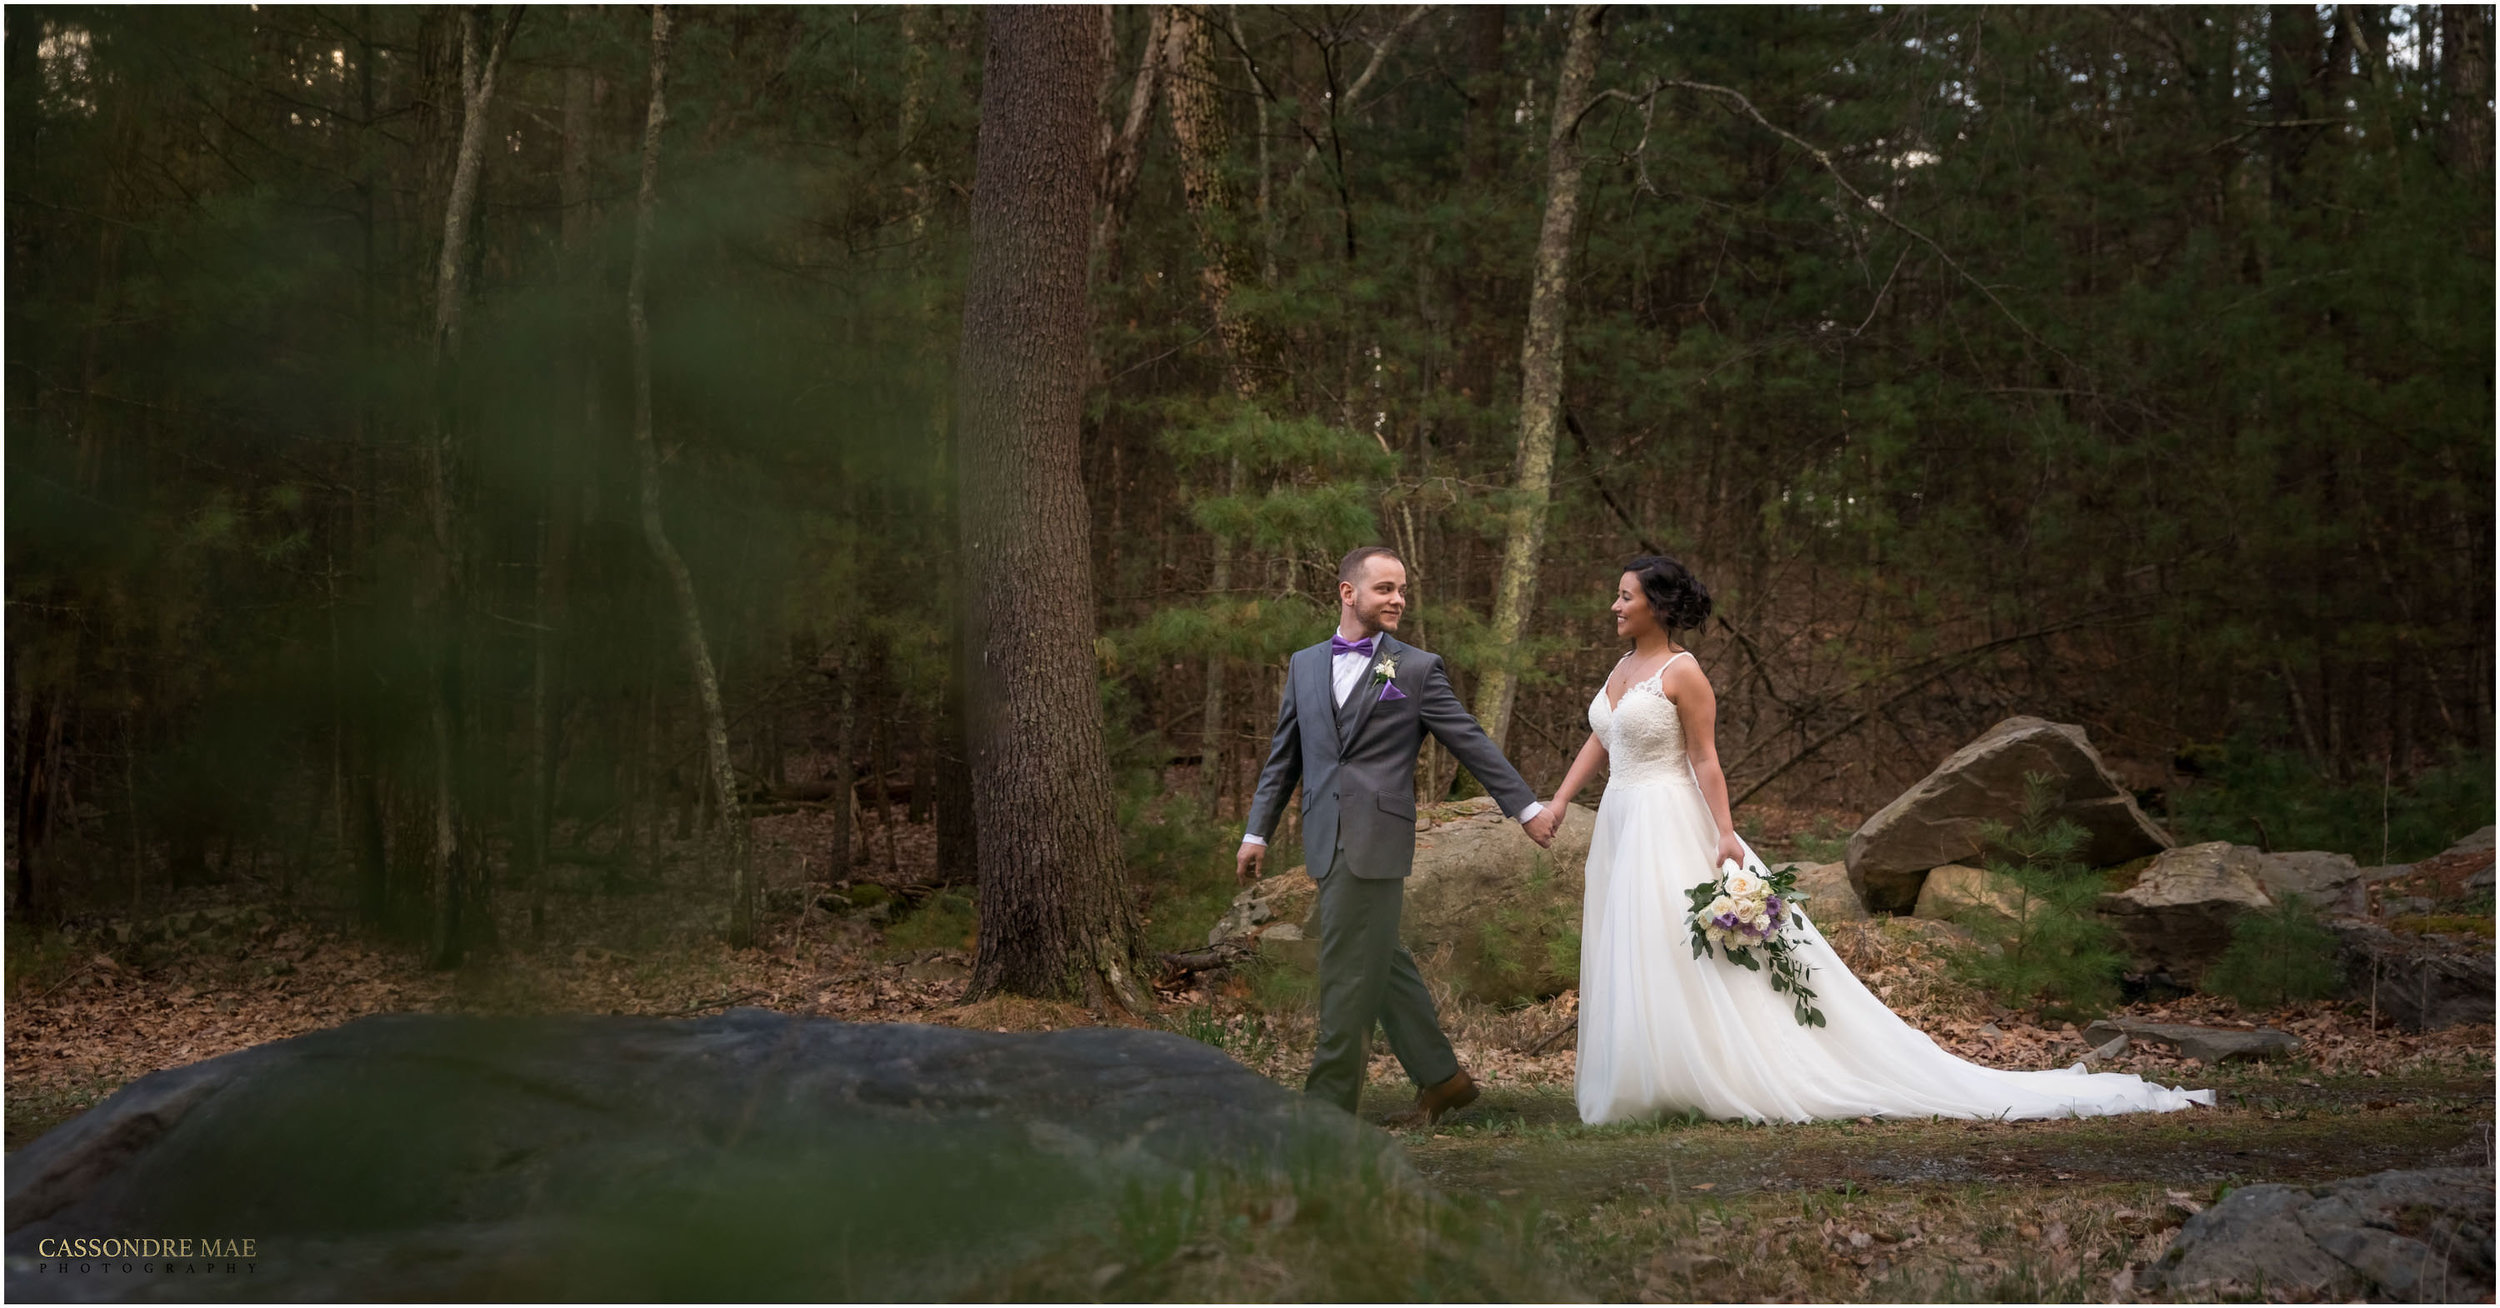 Cassondre Mae Photography Woodloch Resort Wedding 32.jpg